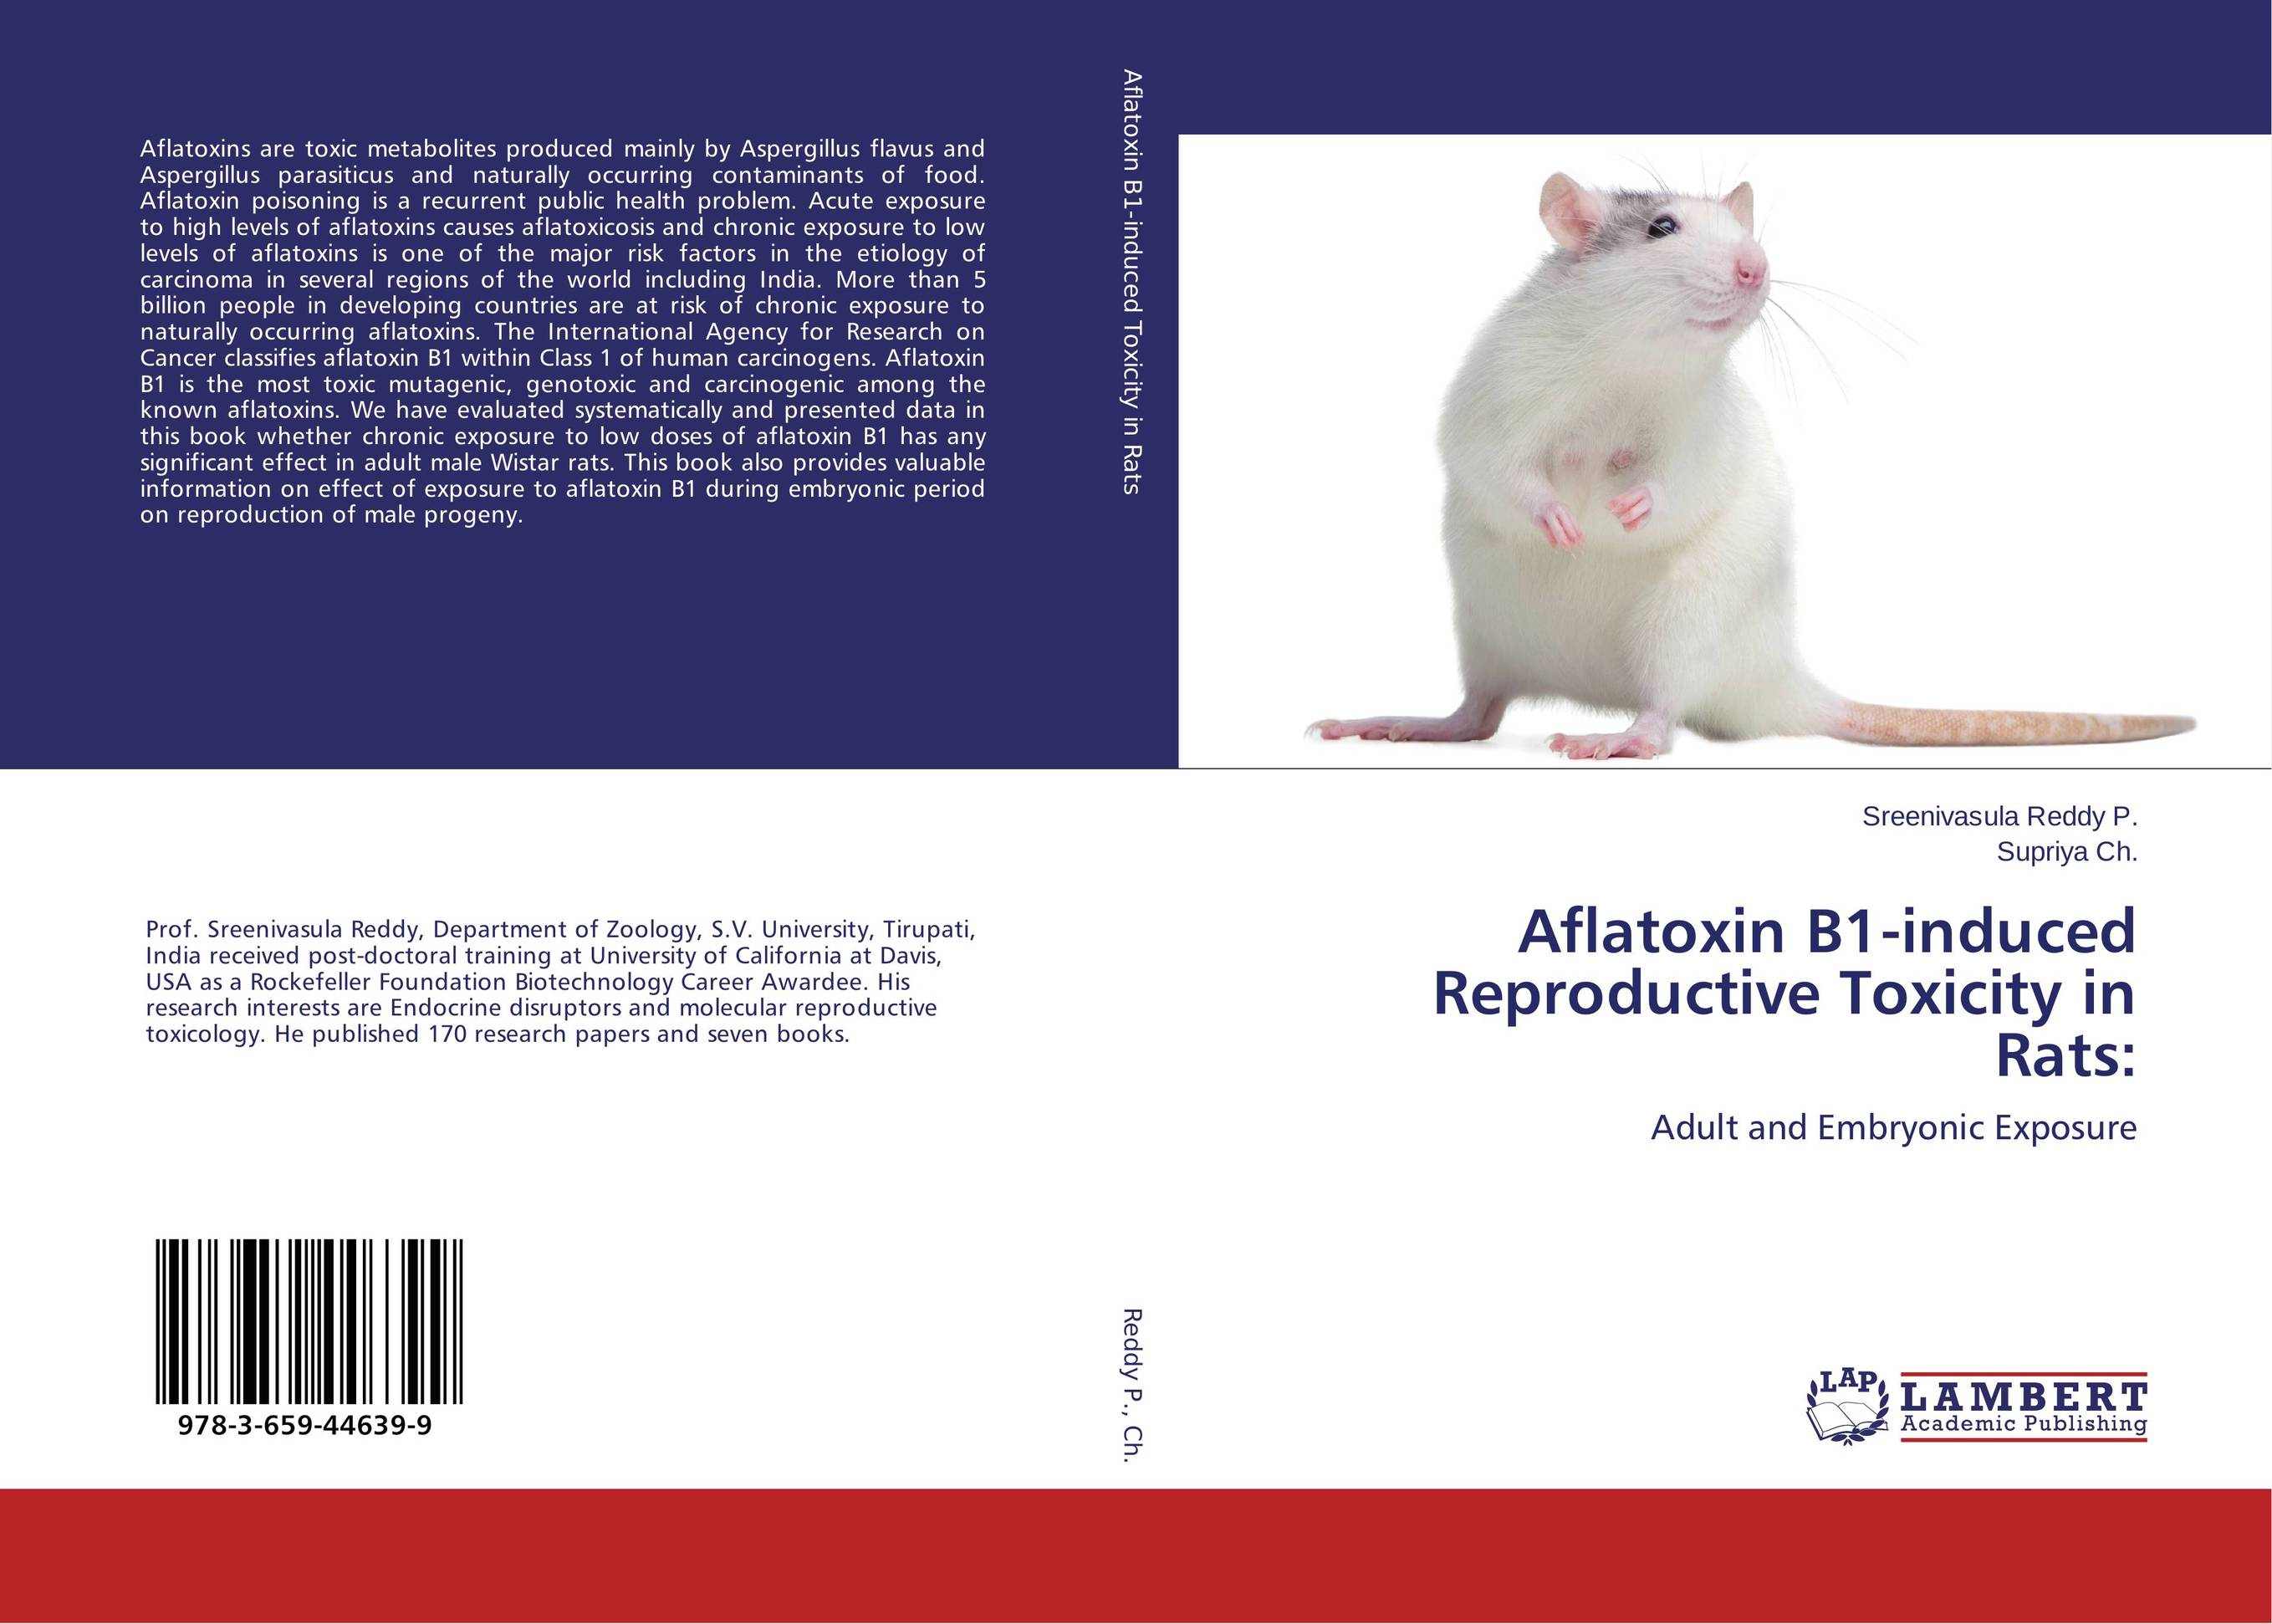 Aflatoxin B1-induced Reproductive Toxicity in Rats: vinclozolin induced reproductive toxicity in male rats